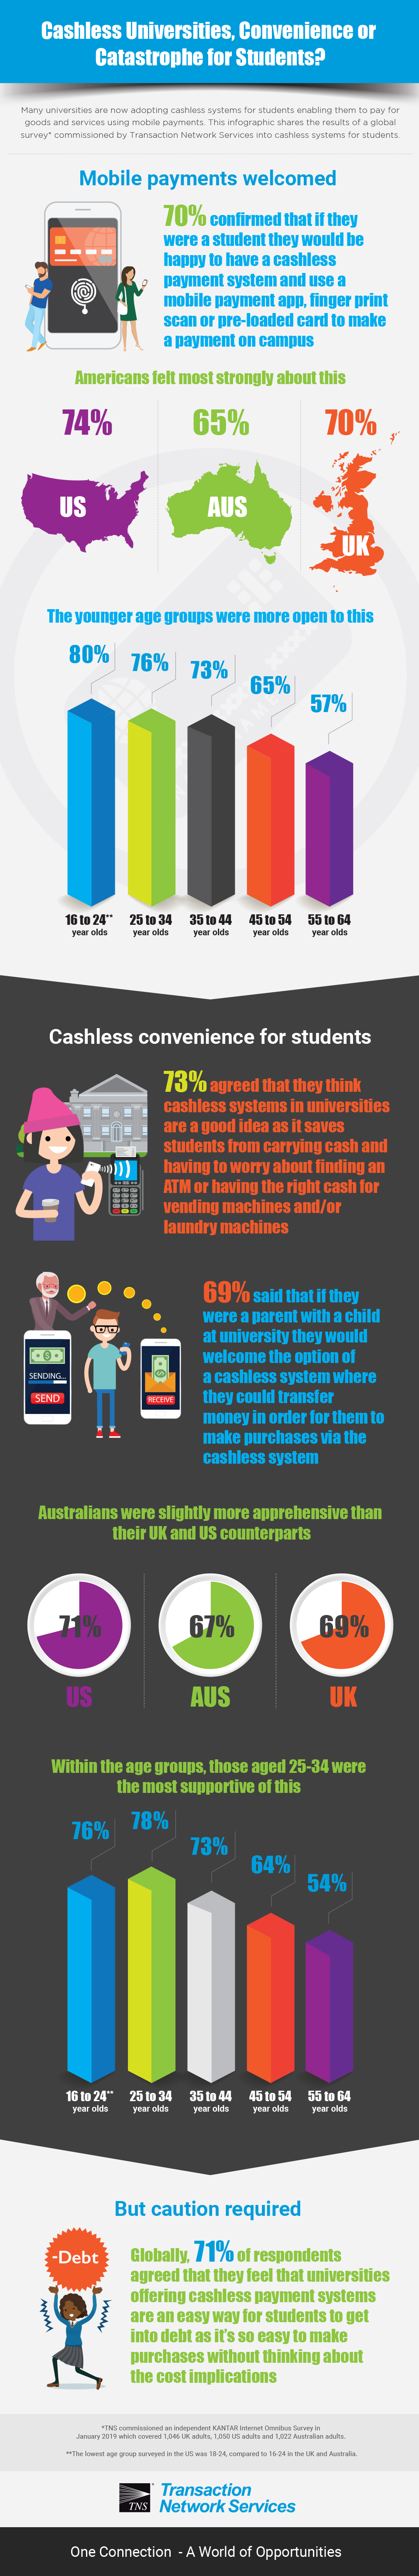 Cashless Universities, Convenience or Catastrophe for Students?